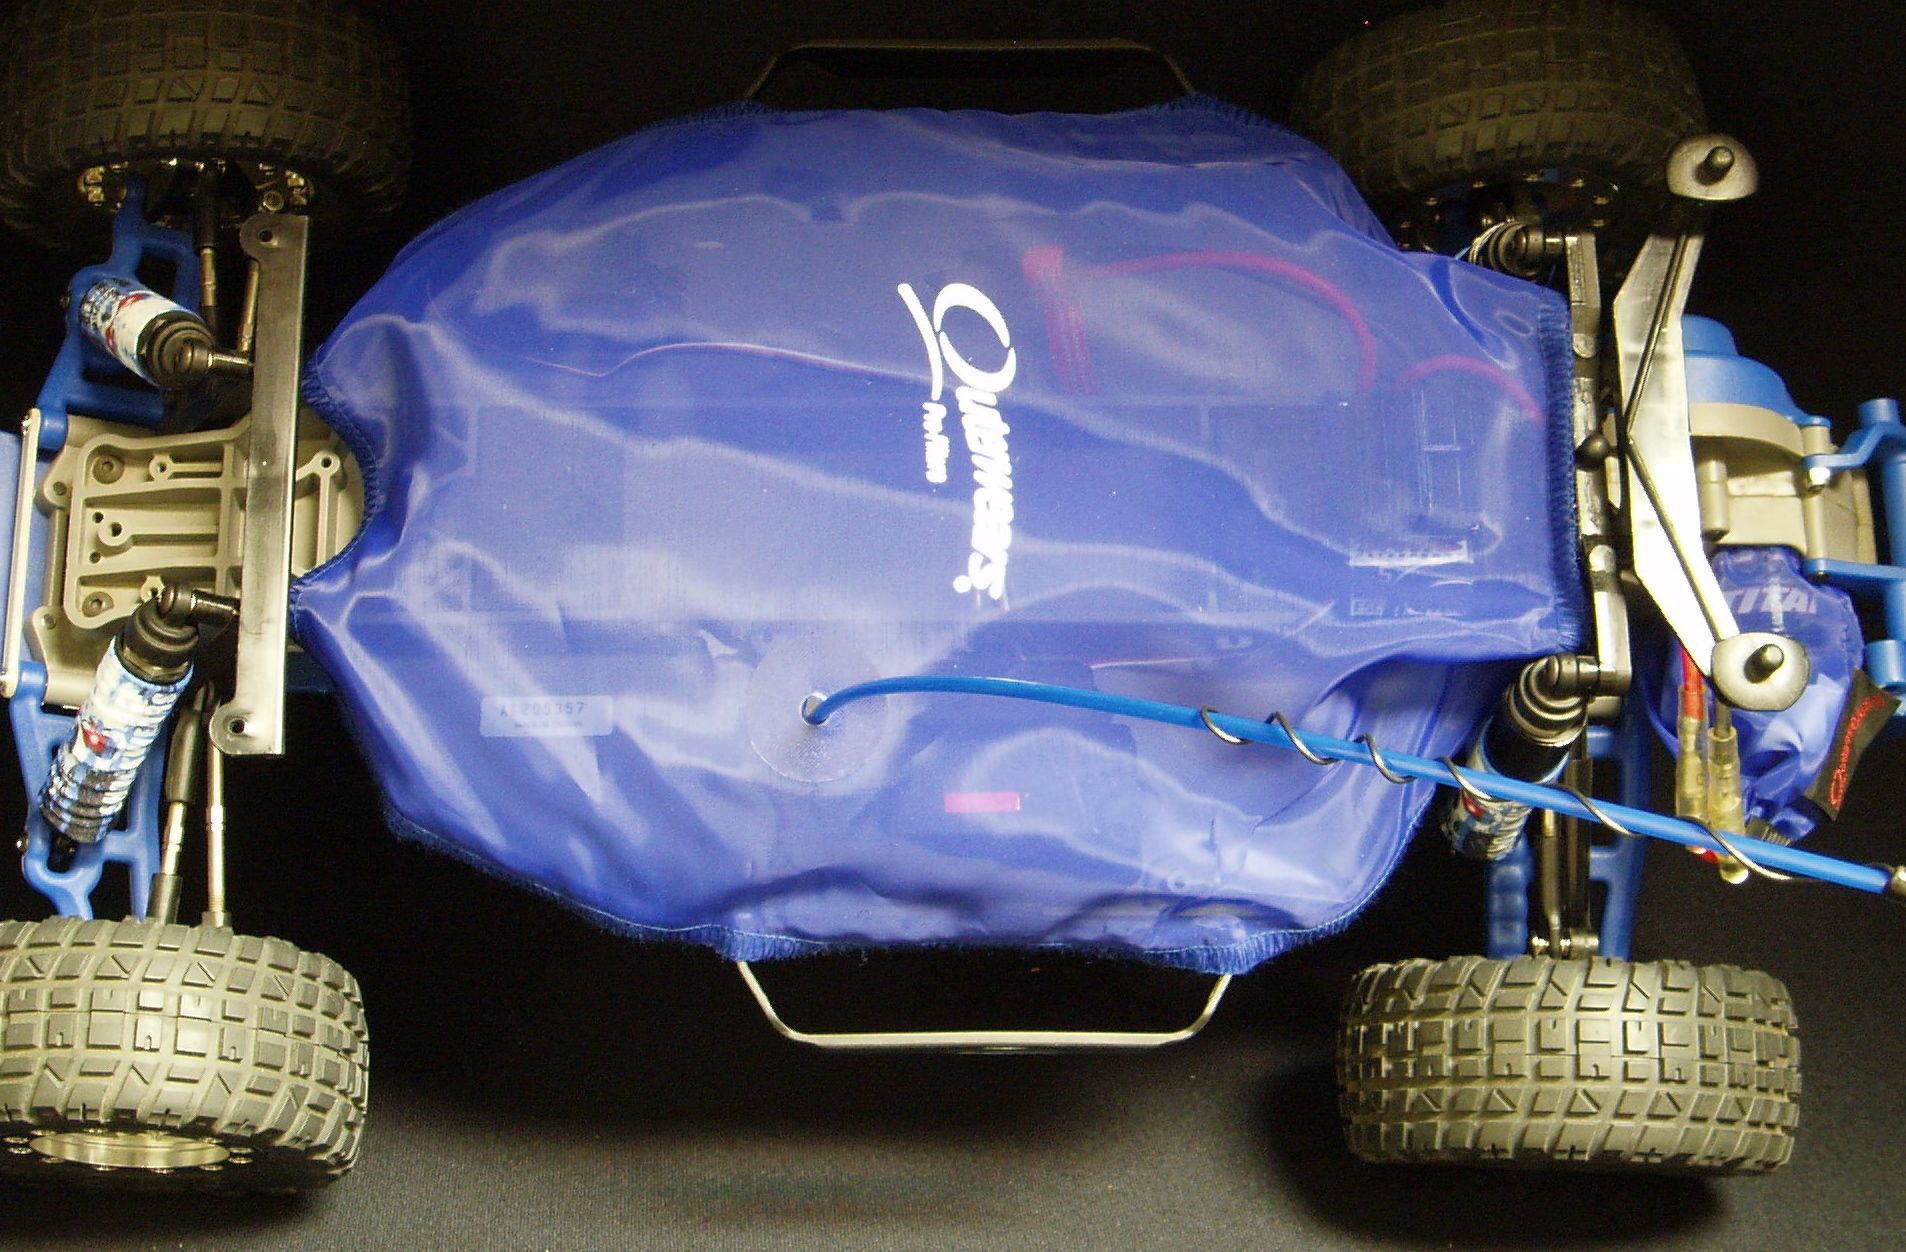 20-2591 Outerwears Pre-Filter chassis shroud for the Traxxas Slash 2wd.